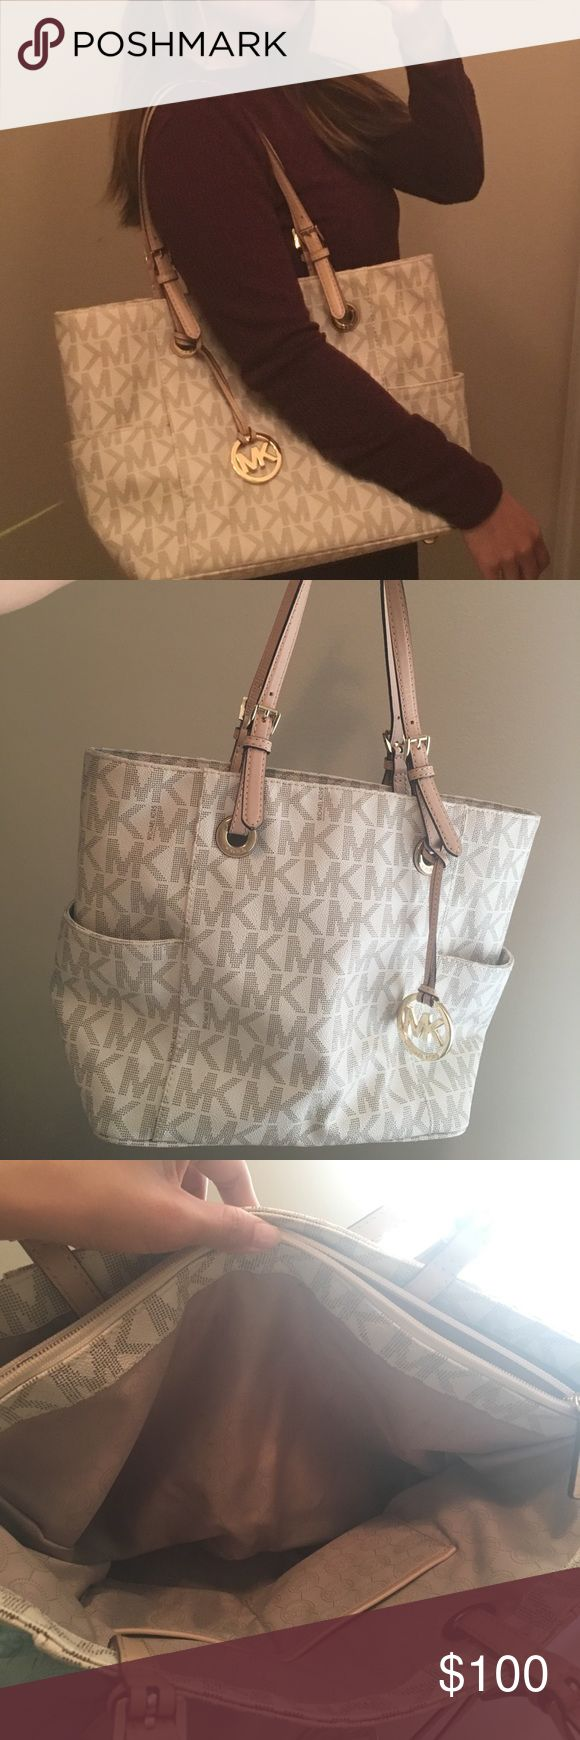 "Michael Kors Logo Handbag Vanilla colored (not white) tote with lots of pockets. All zippers work perfectly. Good condition, has some not very noticeable makeup spots inside, and some wear on the bottom metal ""feet"". Nice and pretty neutral color that goes with lots of outfits. Smoke-free home. Michael Kors Bags Shoulder Bags"